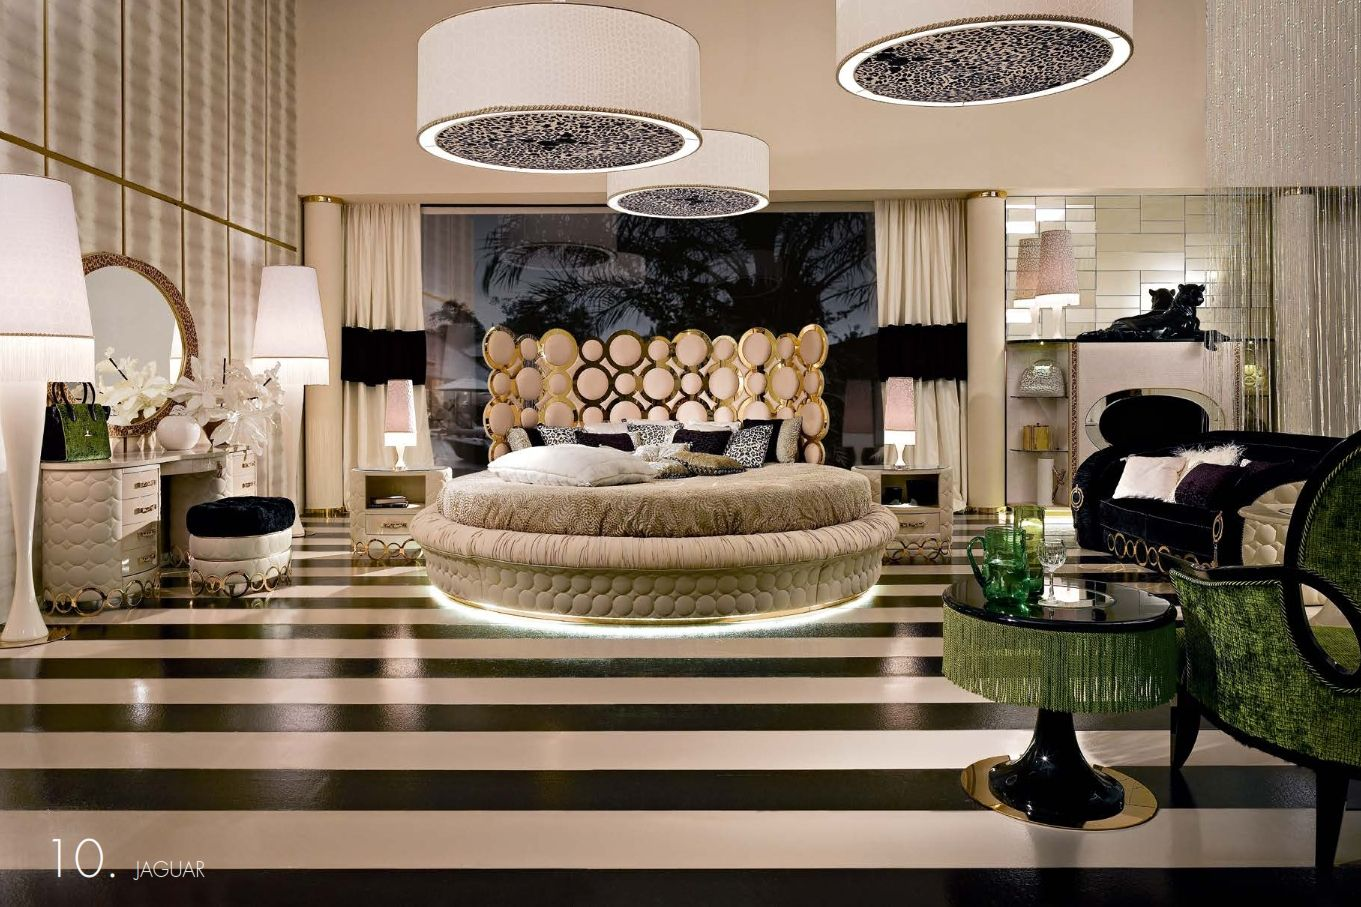 Luxurious Furniture Luxury Round Bedroom Alta Moda